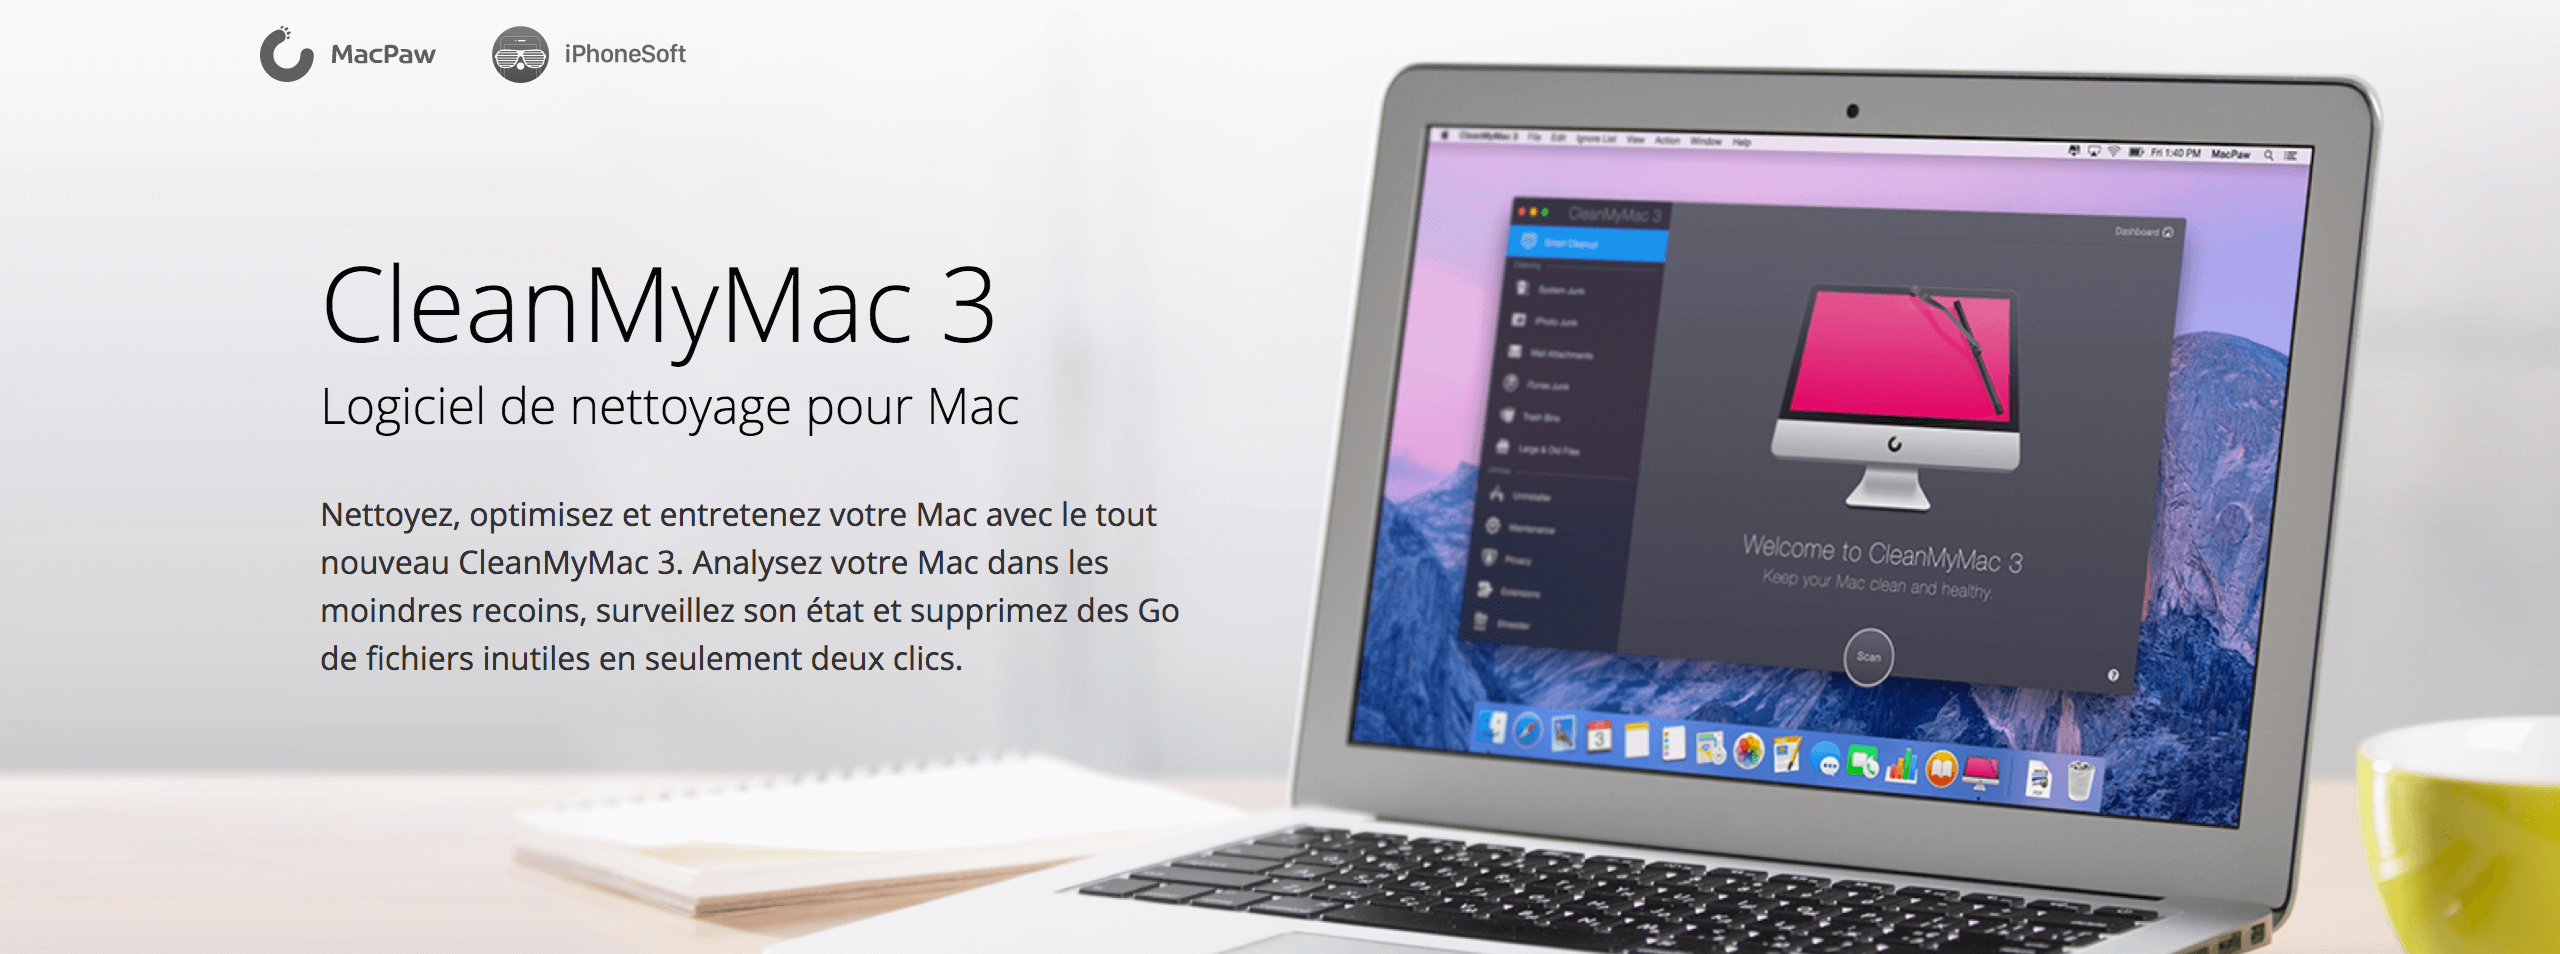 concours cleanmymac iphonesoft